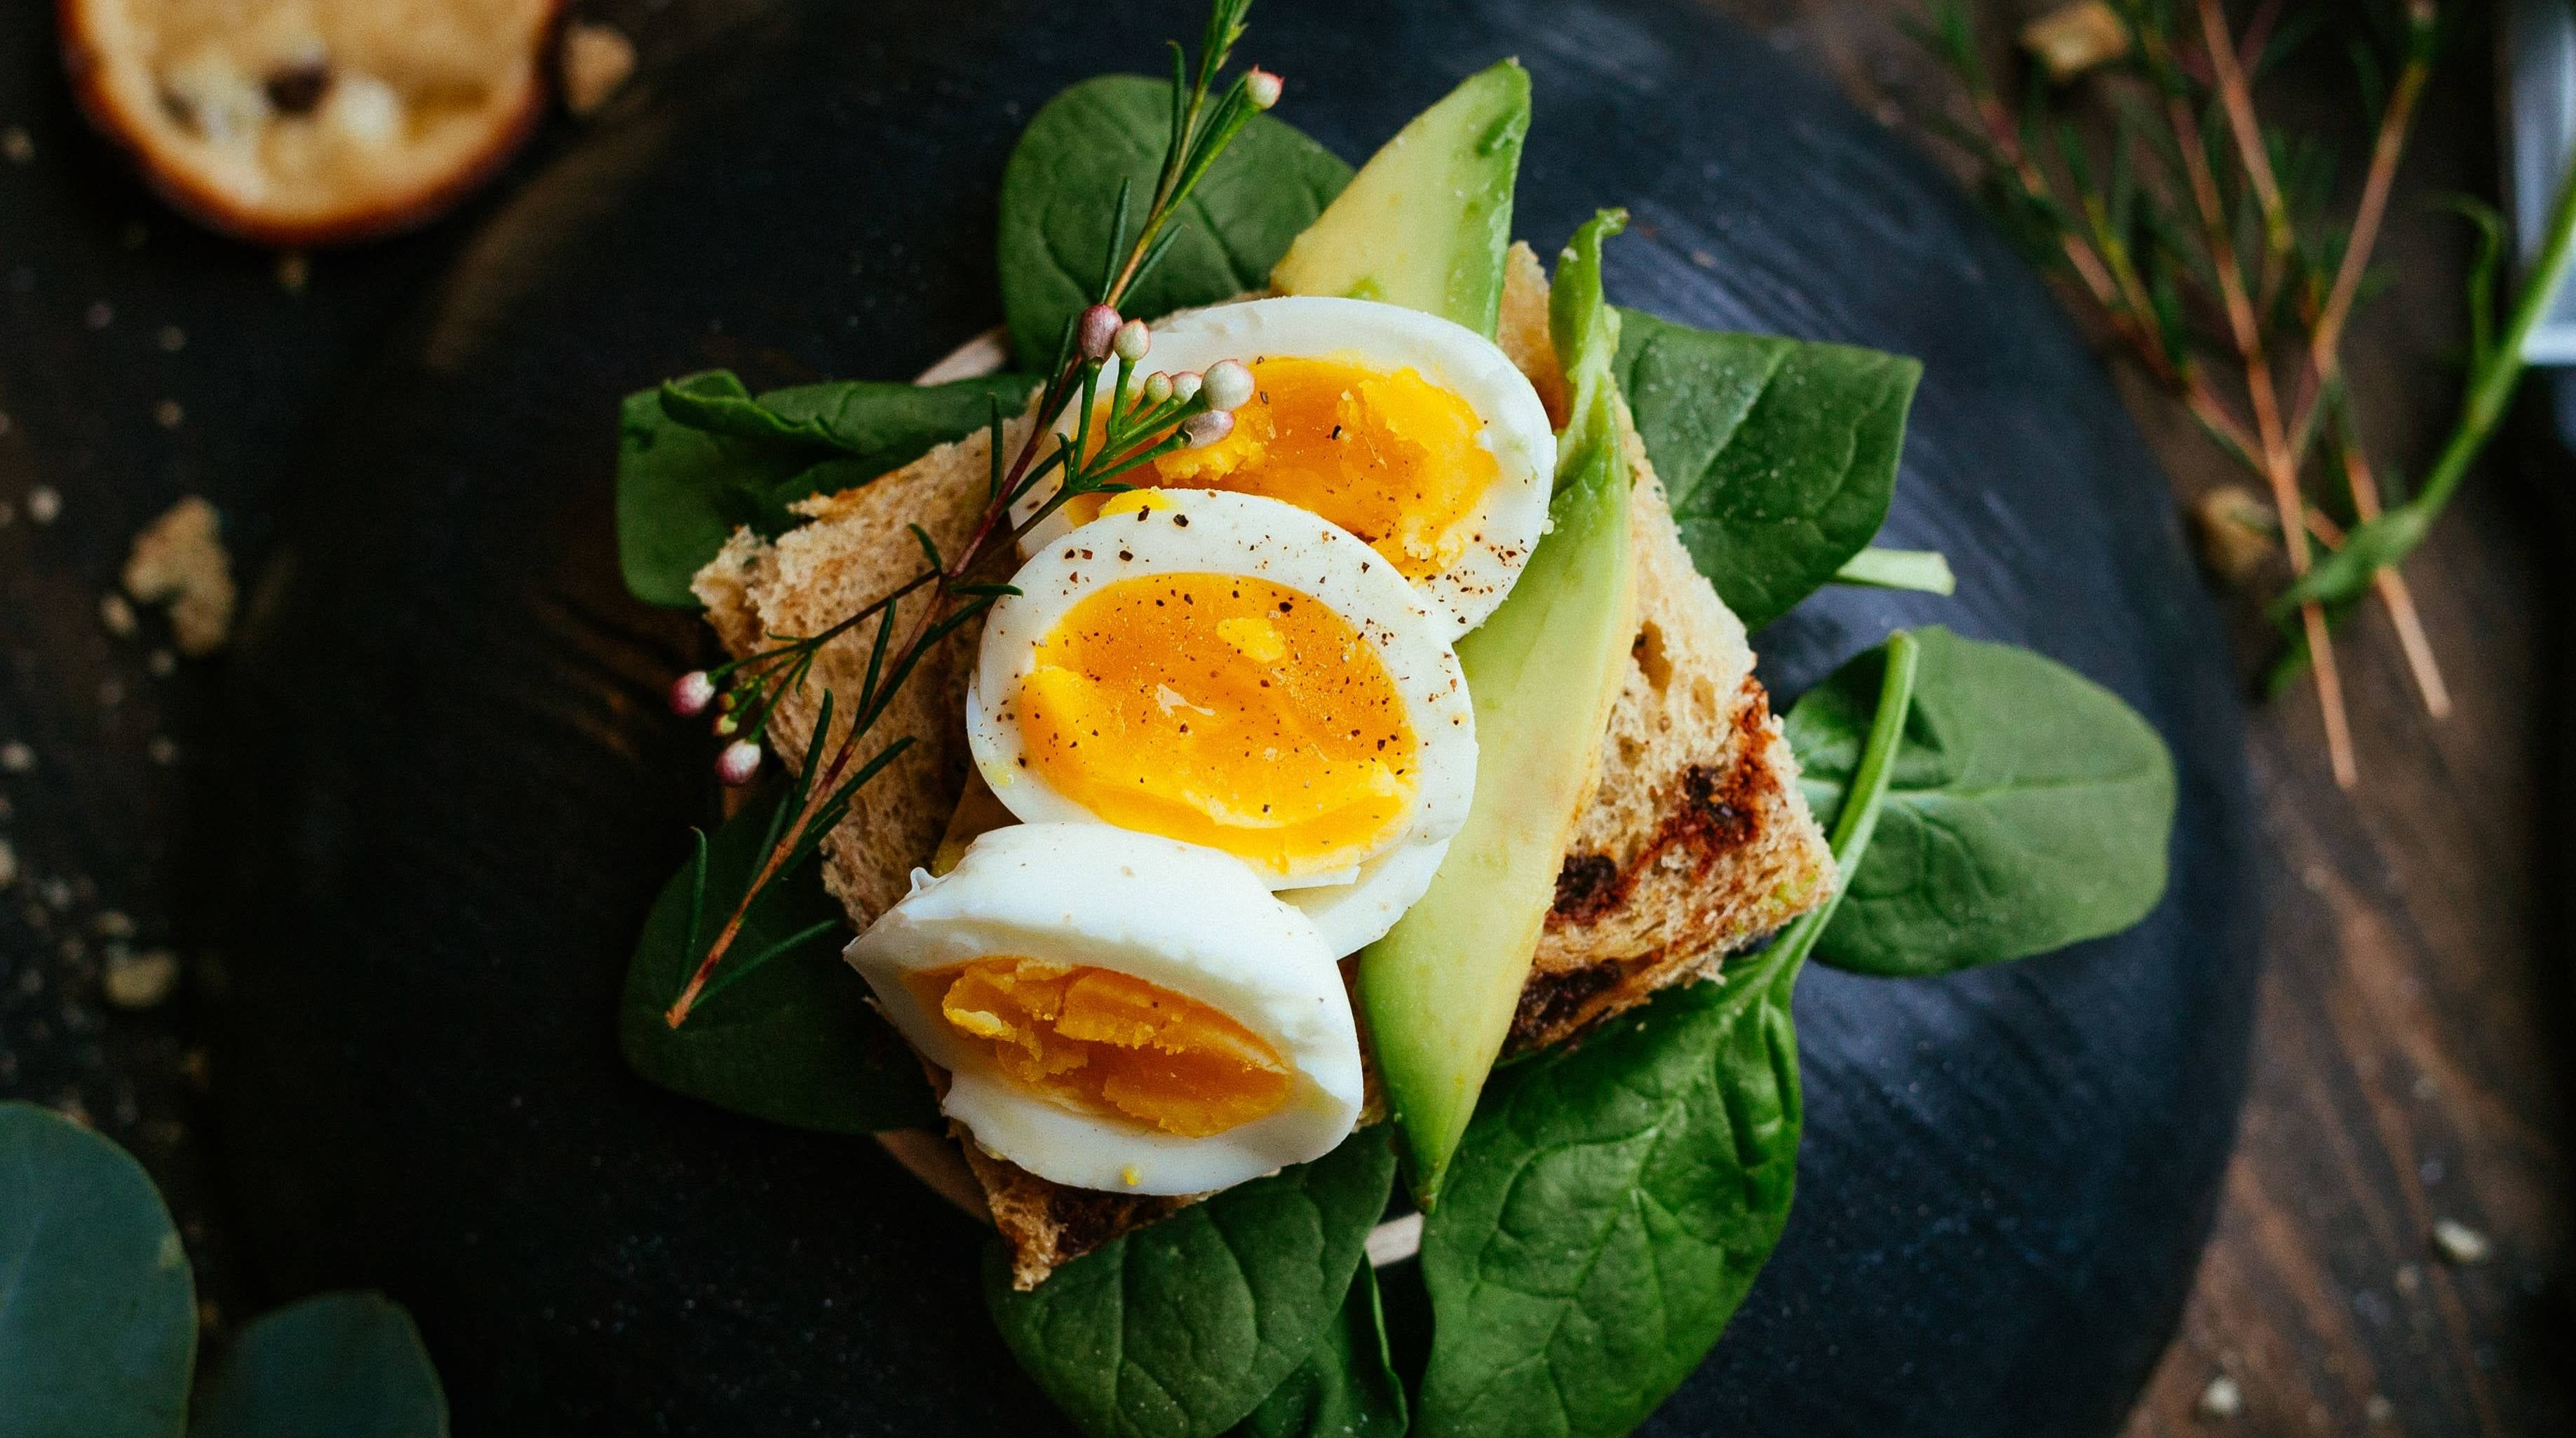 Use A Paper Towel To Stabilise Slippery Eggs While Slicing